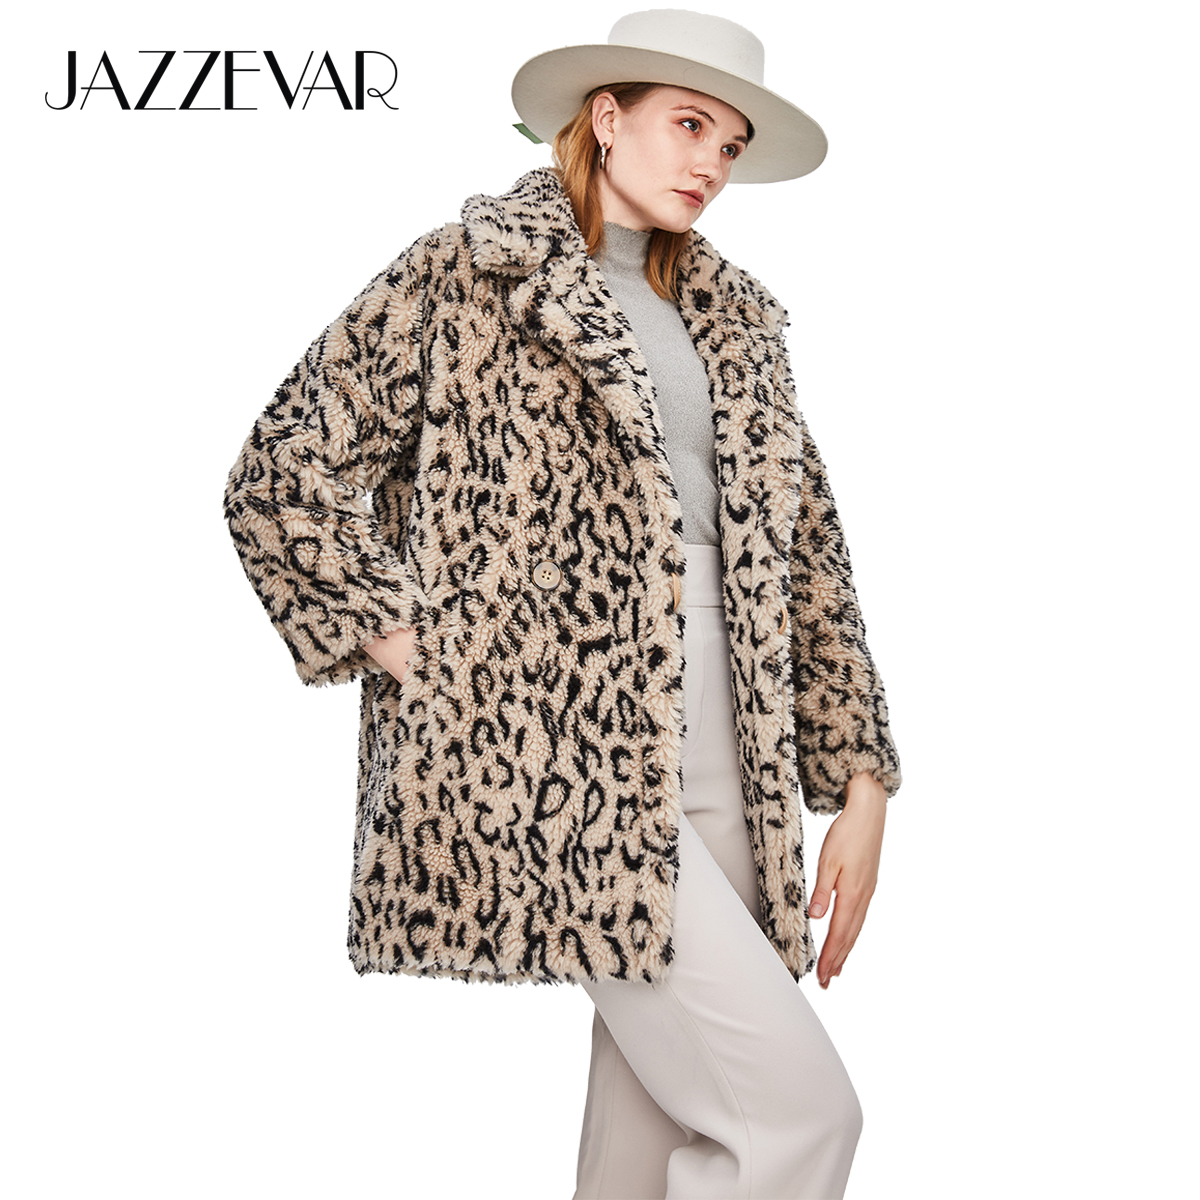 JAZZEVAR 2019 Winter New Fashion Womens Teddy Bear Icon Coat Classic Real Sheep Fur Oversized Jacket Thick Warm Outerwear J8003